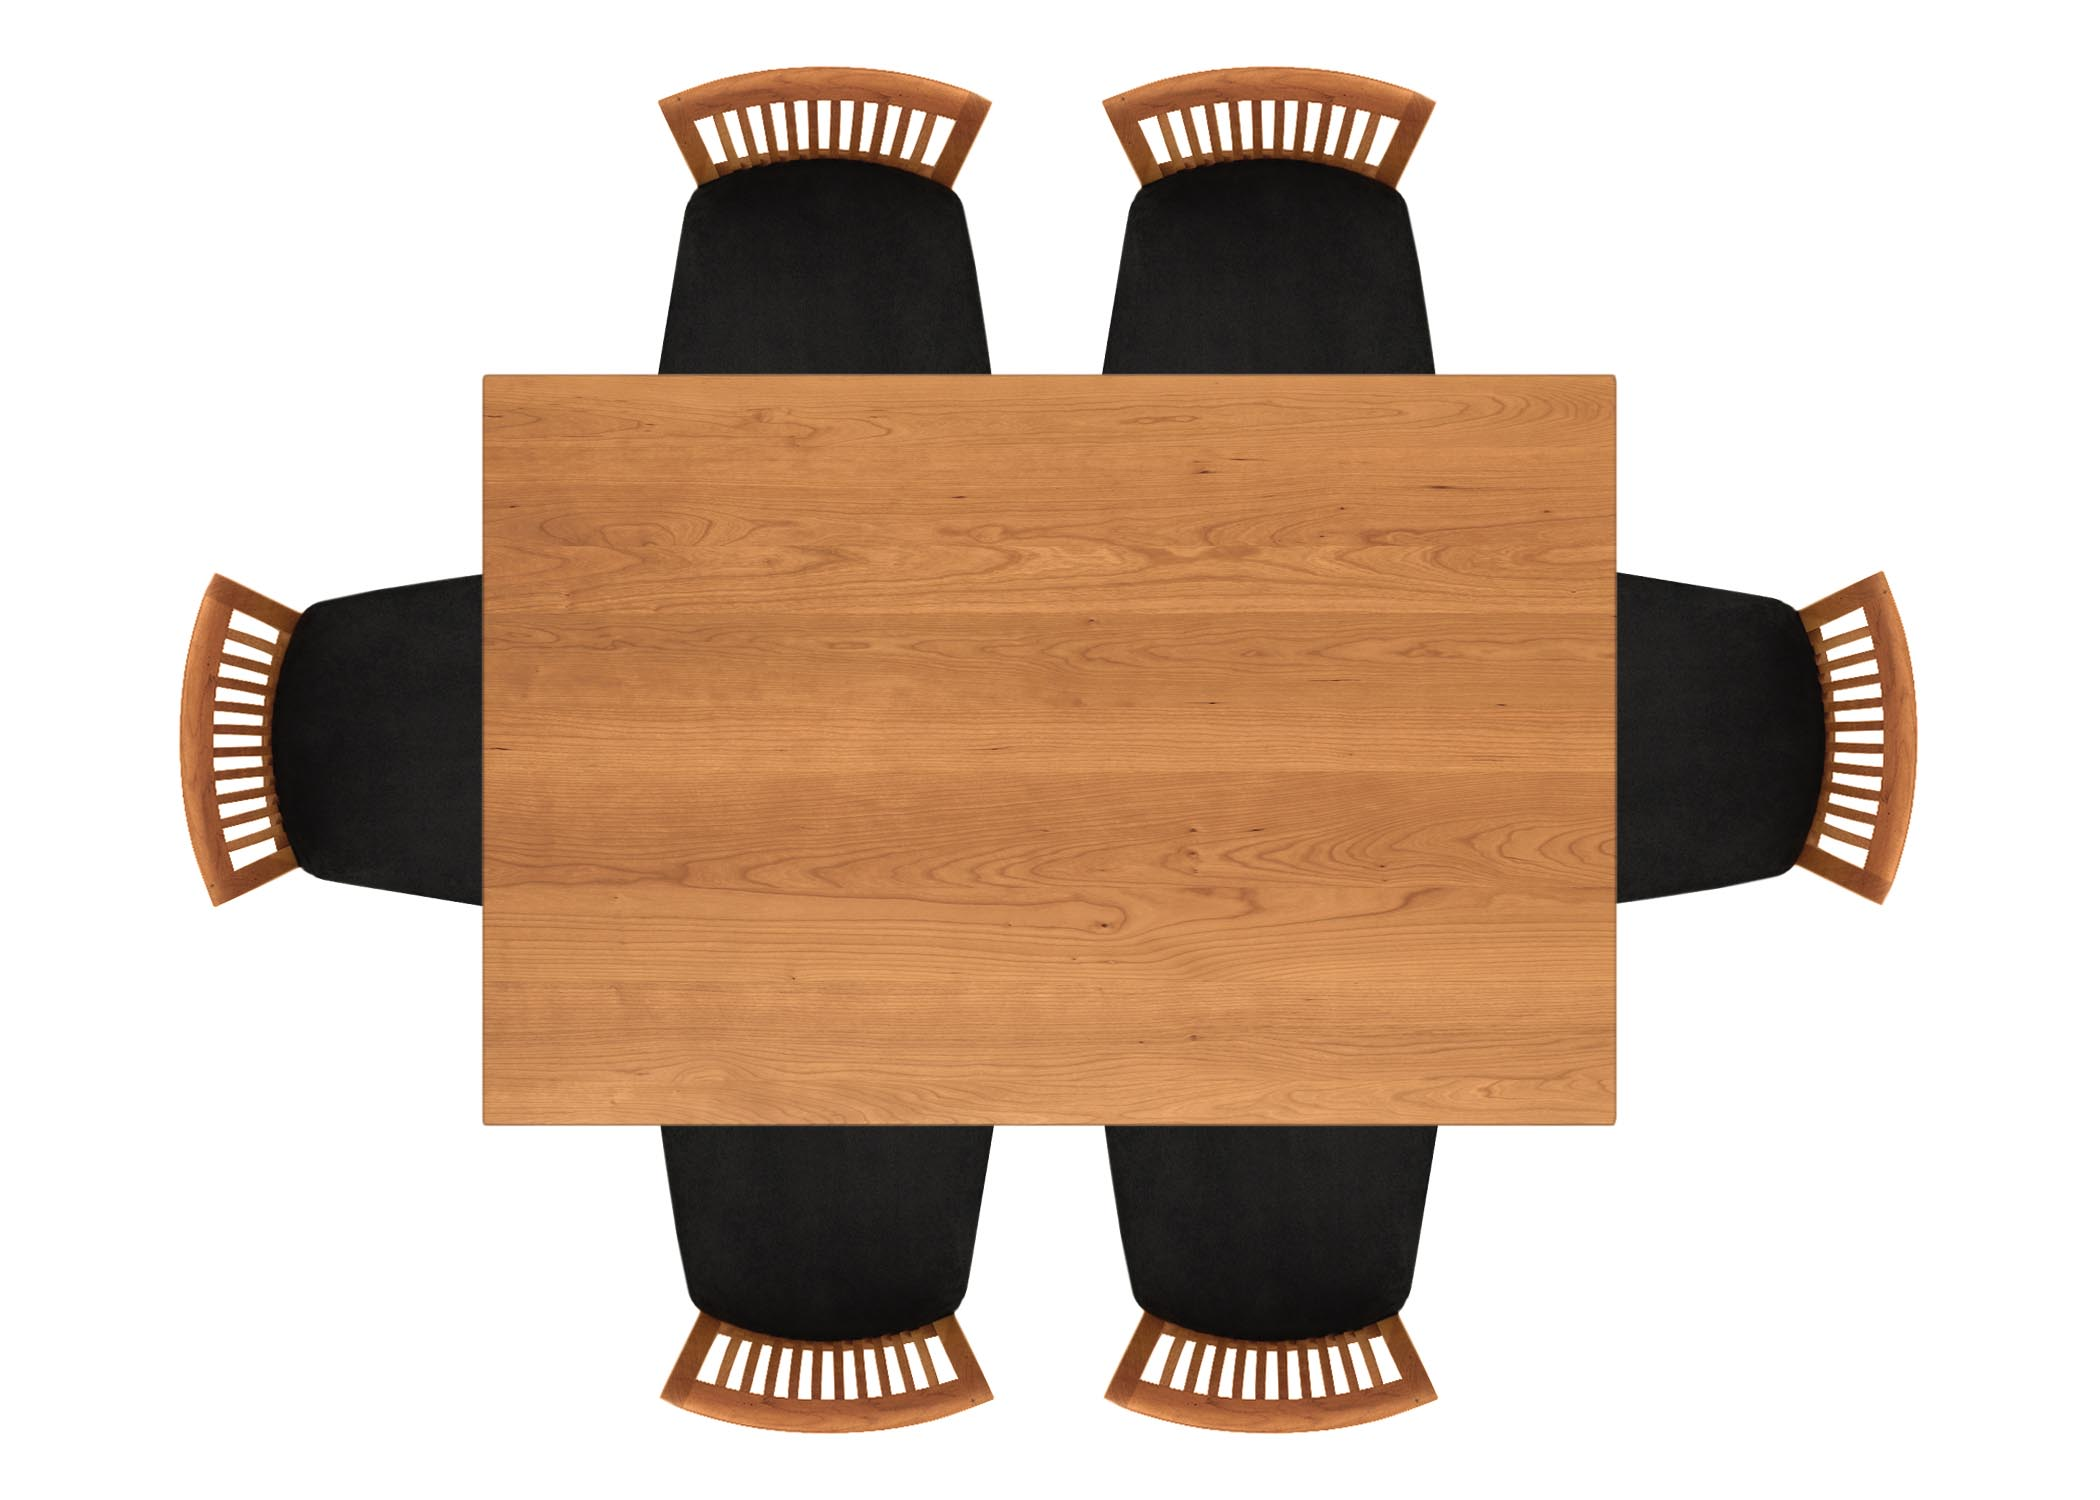 Top View Of Table : Download JPEG. Related Images